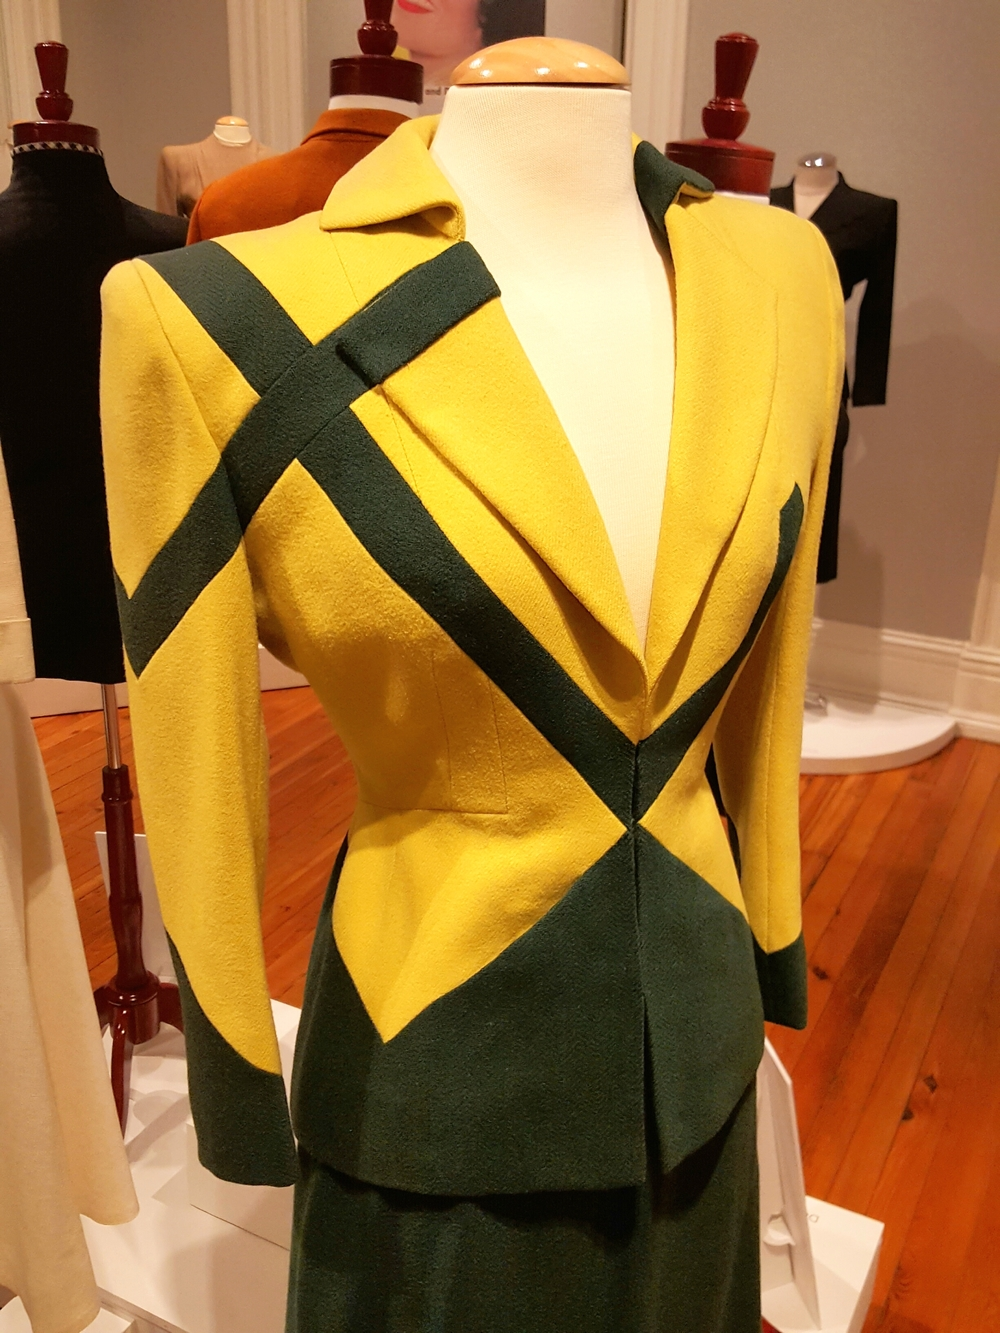 This bold yellow/green suit was featured in the 1947 film LADIES MAN and designed by Mary Kay Dodson. It was a black and white movie -- alas, viewers could never appreciate the delicious chartreuse color.